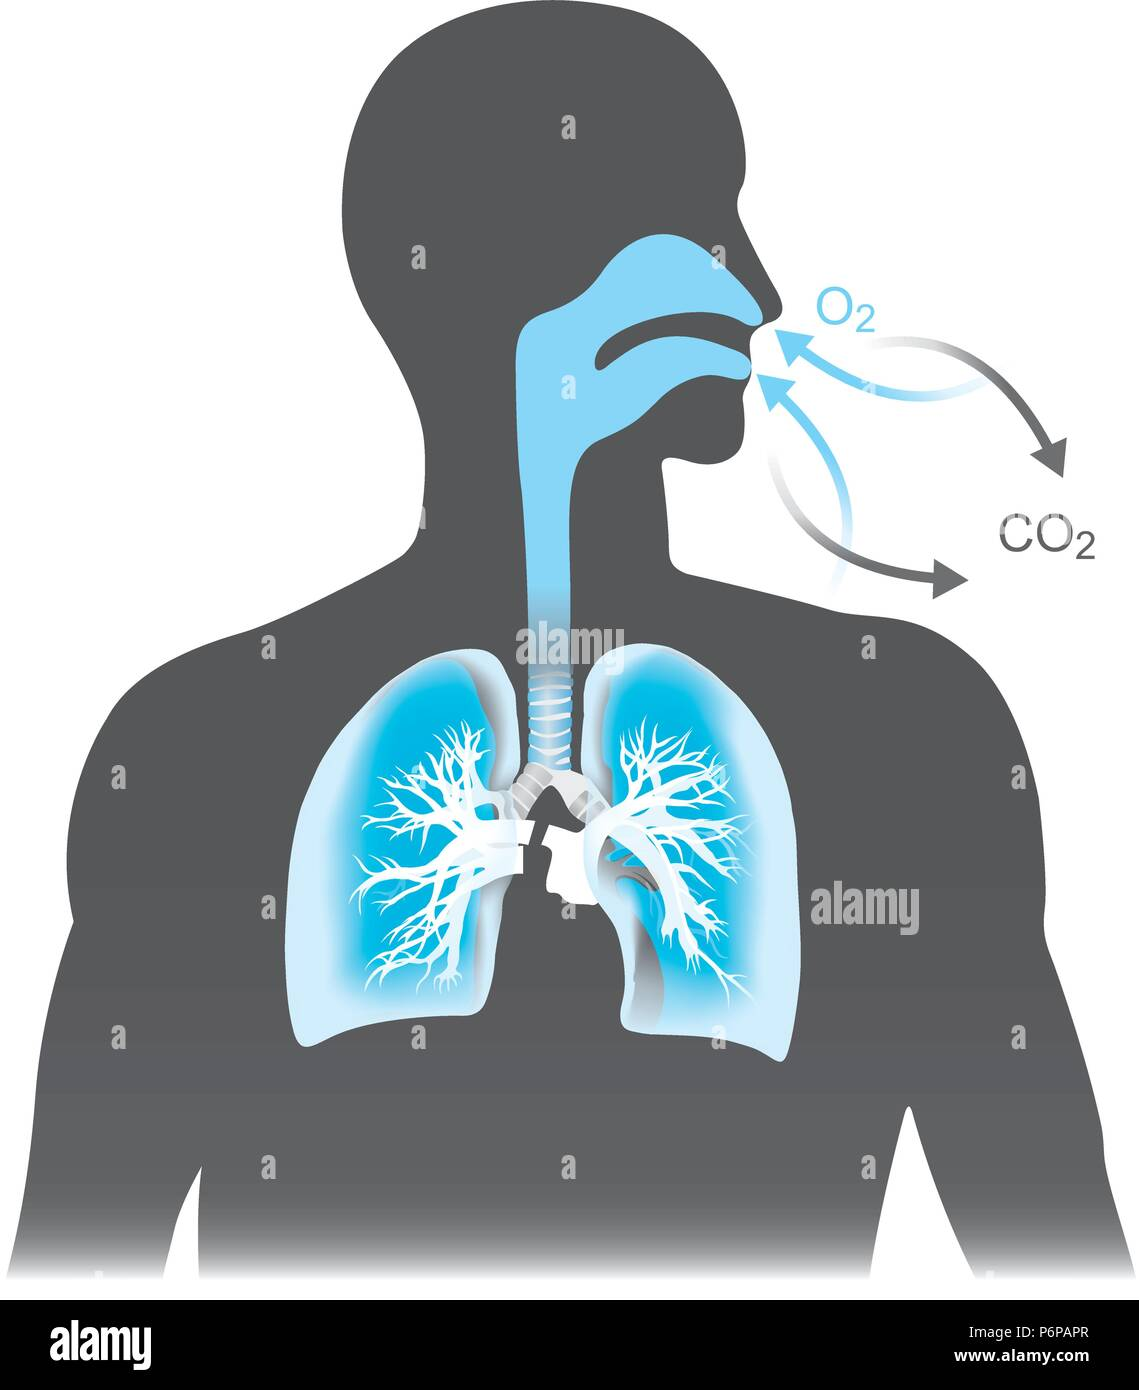 The lungs are the primary organs of respiration in humans. Mono tone black and blue colour. - Stock Image